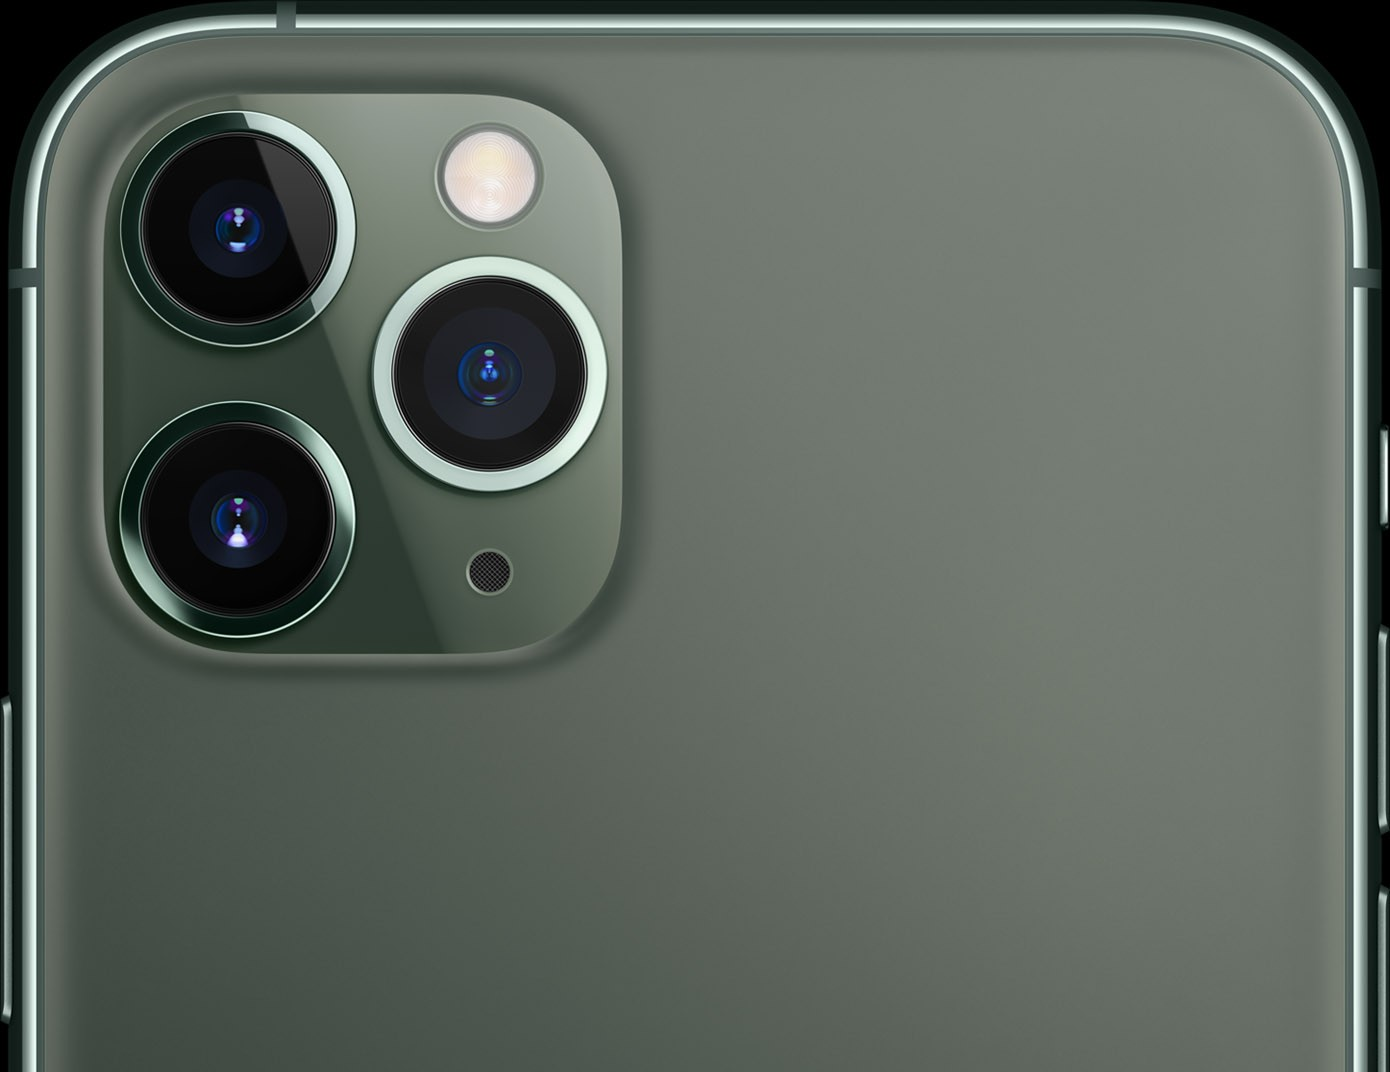 iPhone 11 Pro Pro cameras. Pro display. Pro performance.